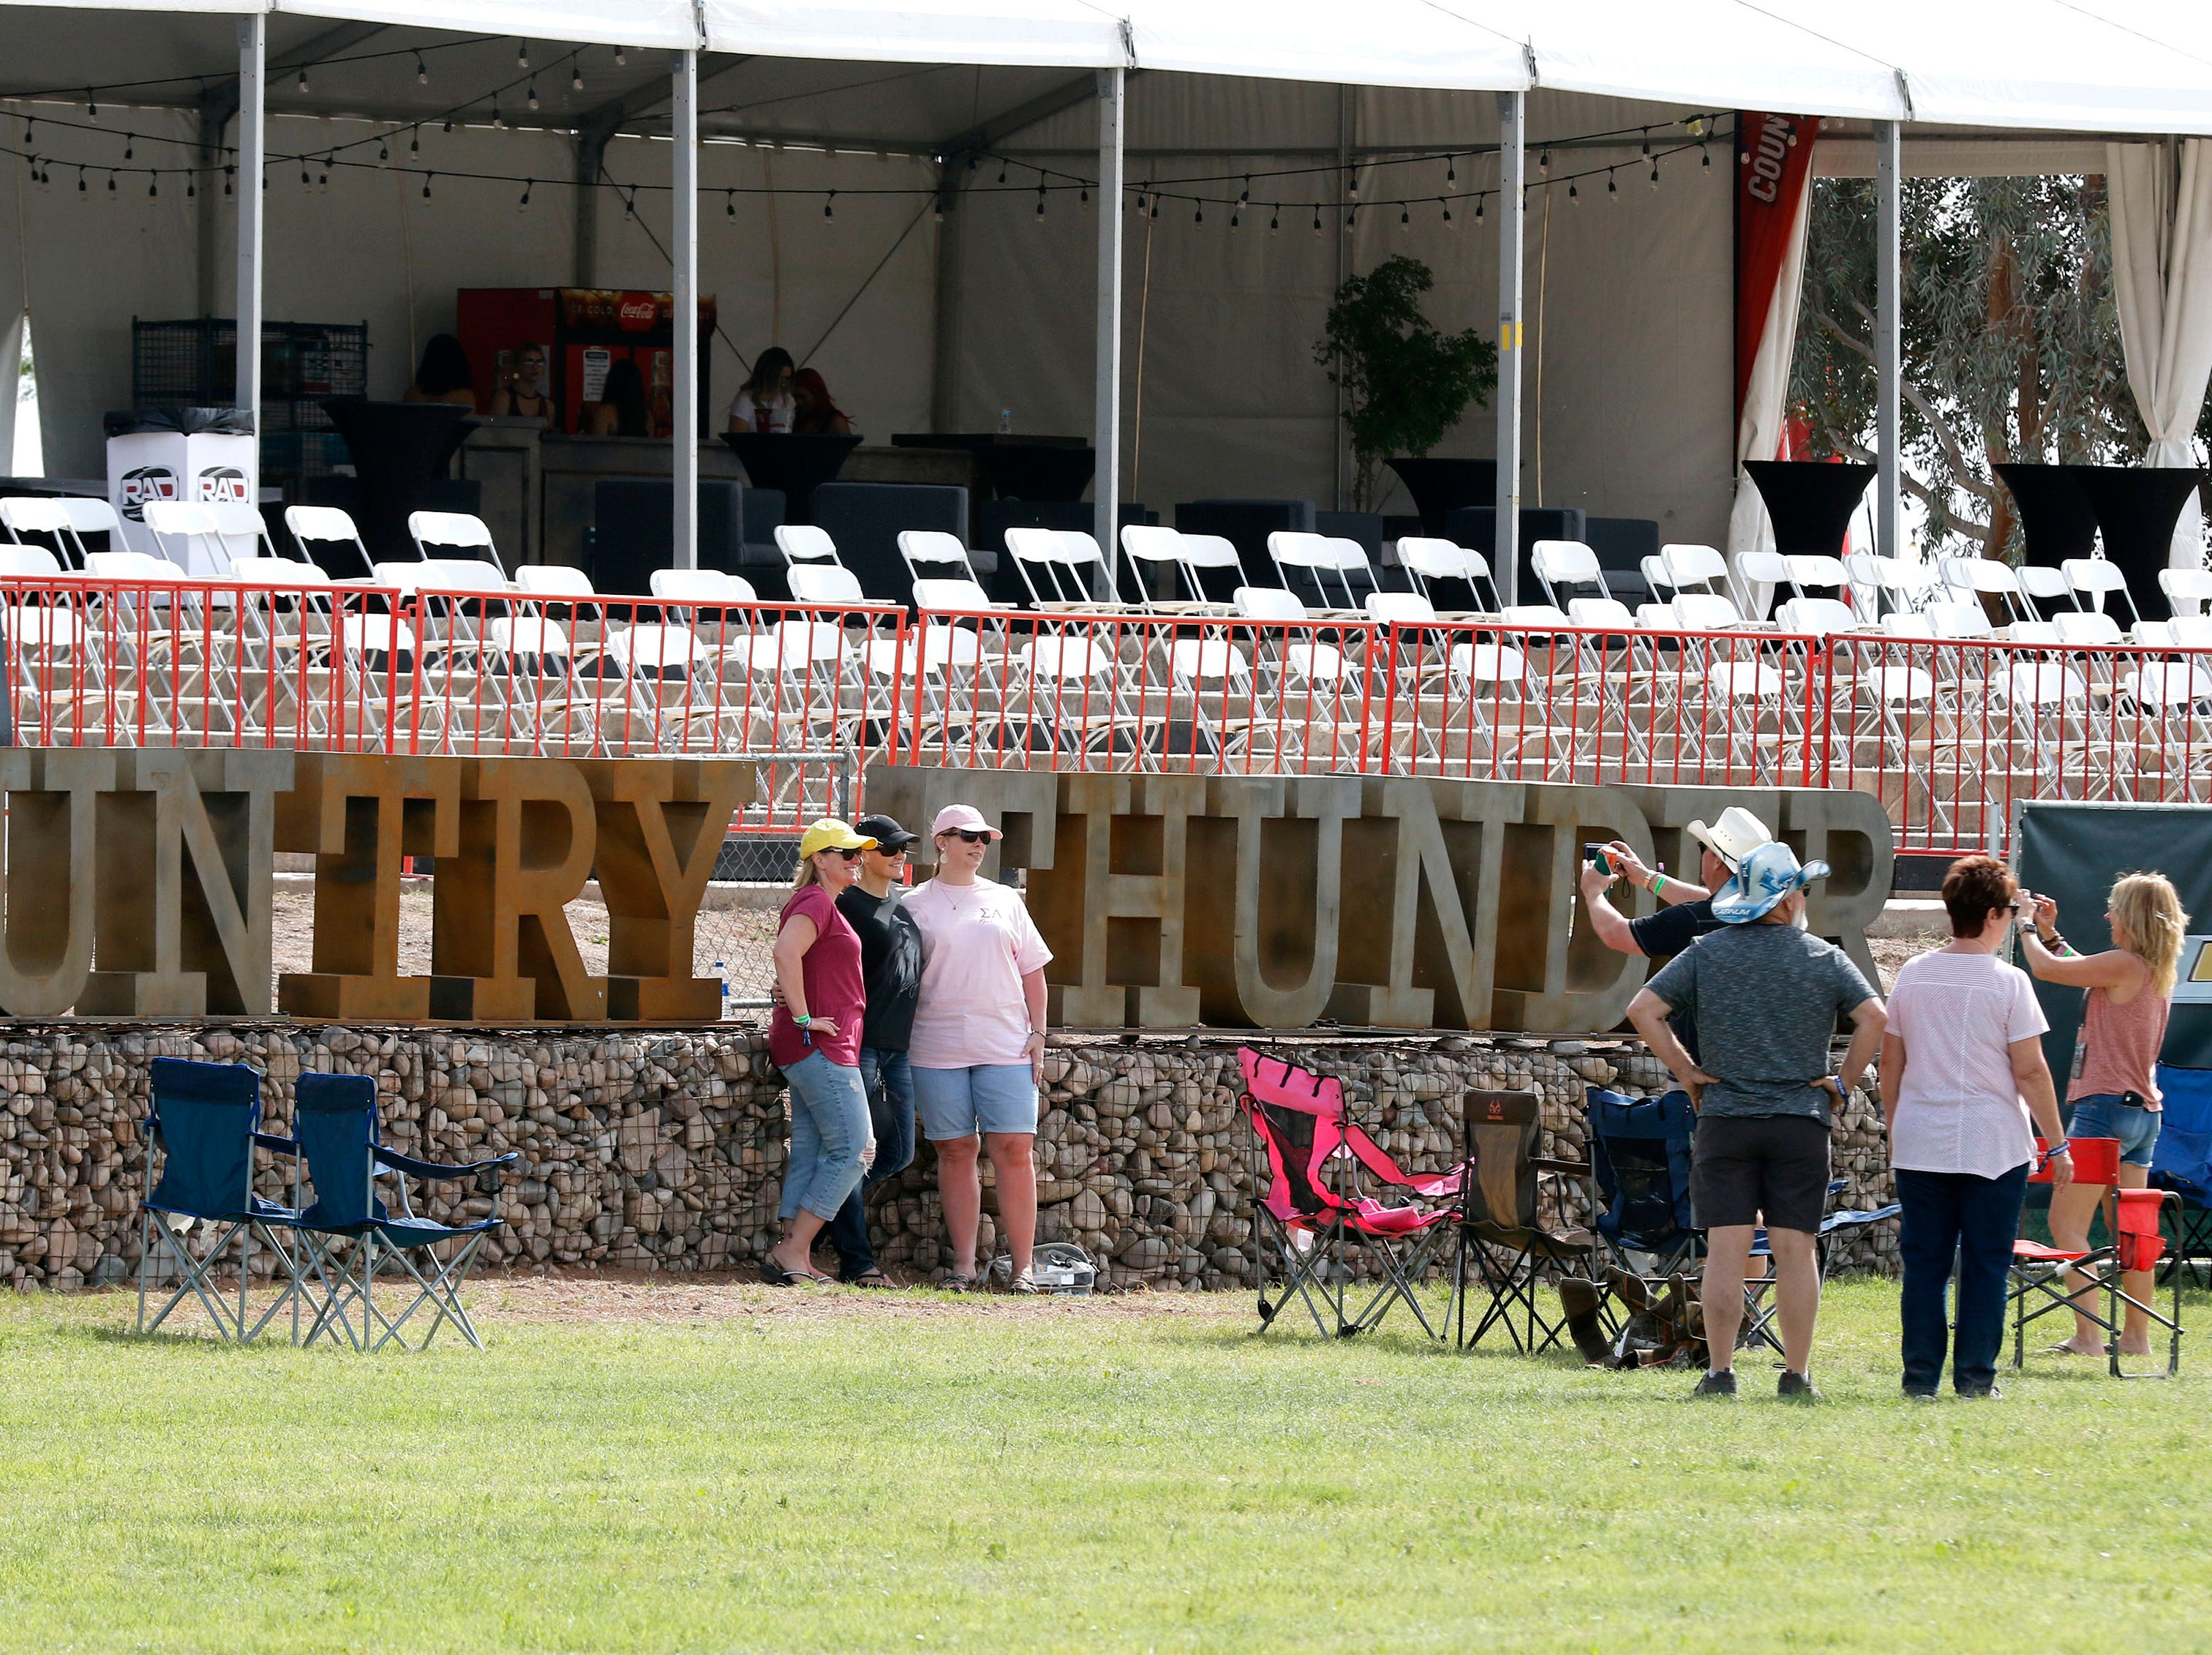 Country and Western music lovers pose in front of the Country Thunder sign during Country Thunder Arizona on April 11, 2019, in Florence, Arizona.